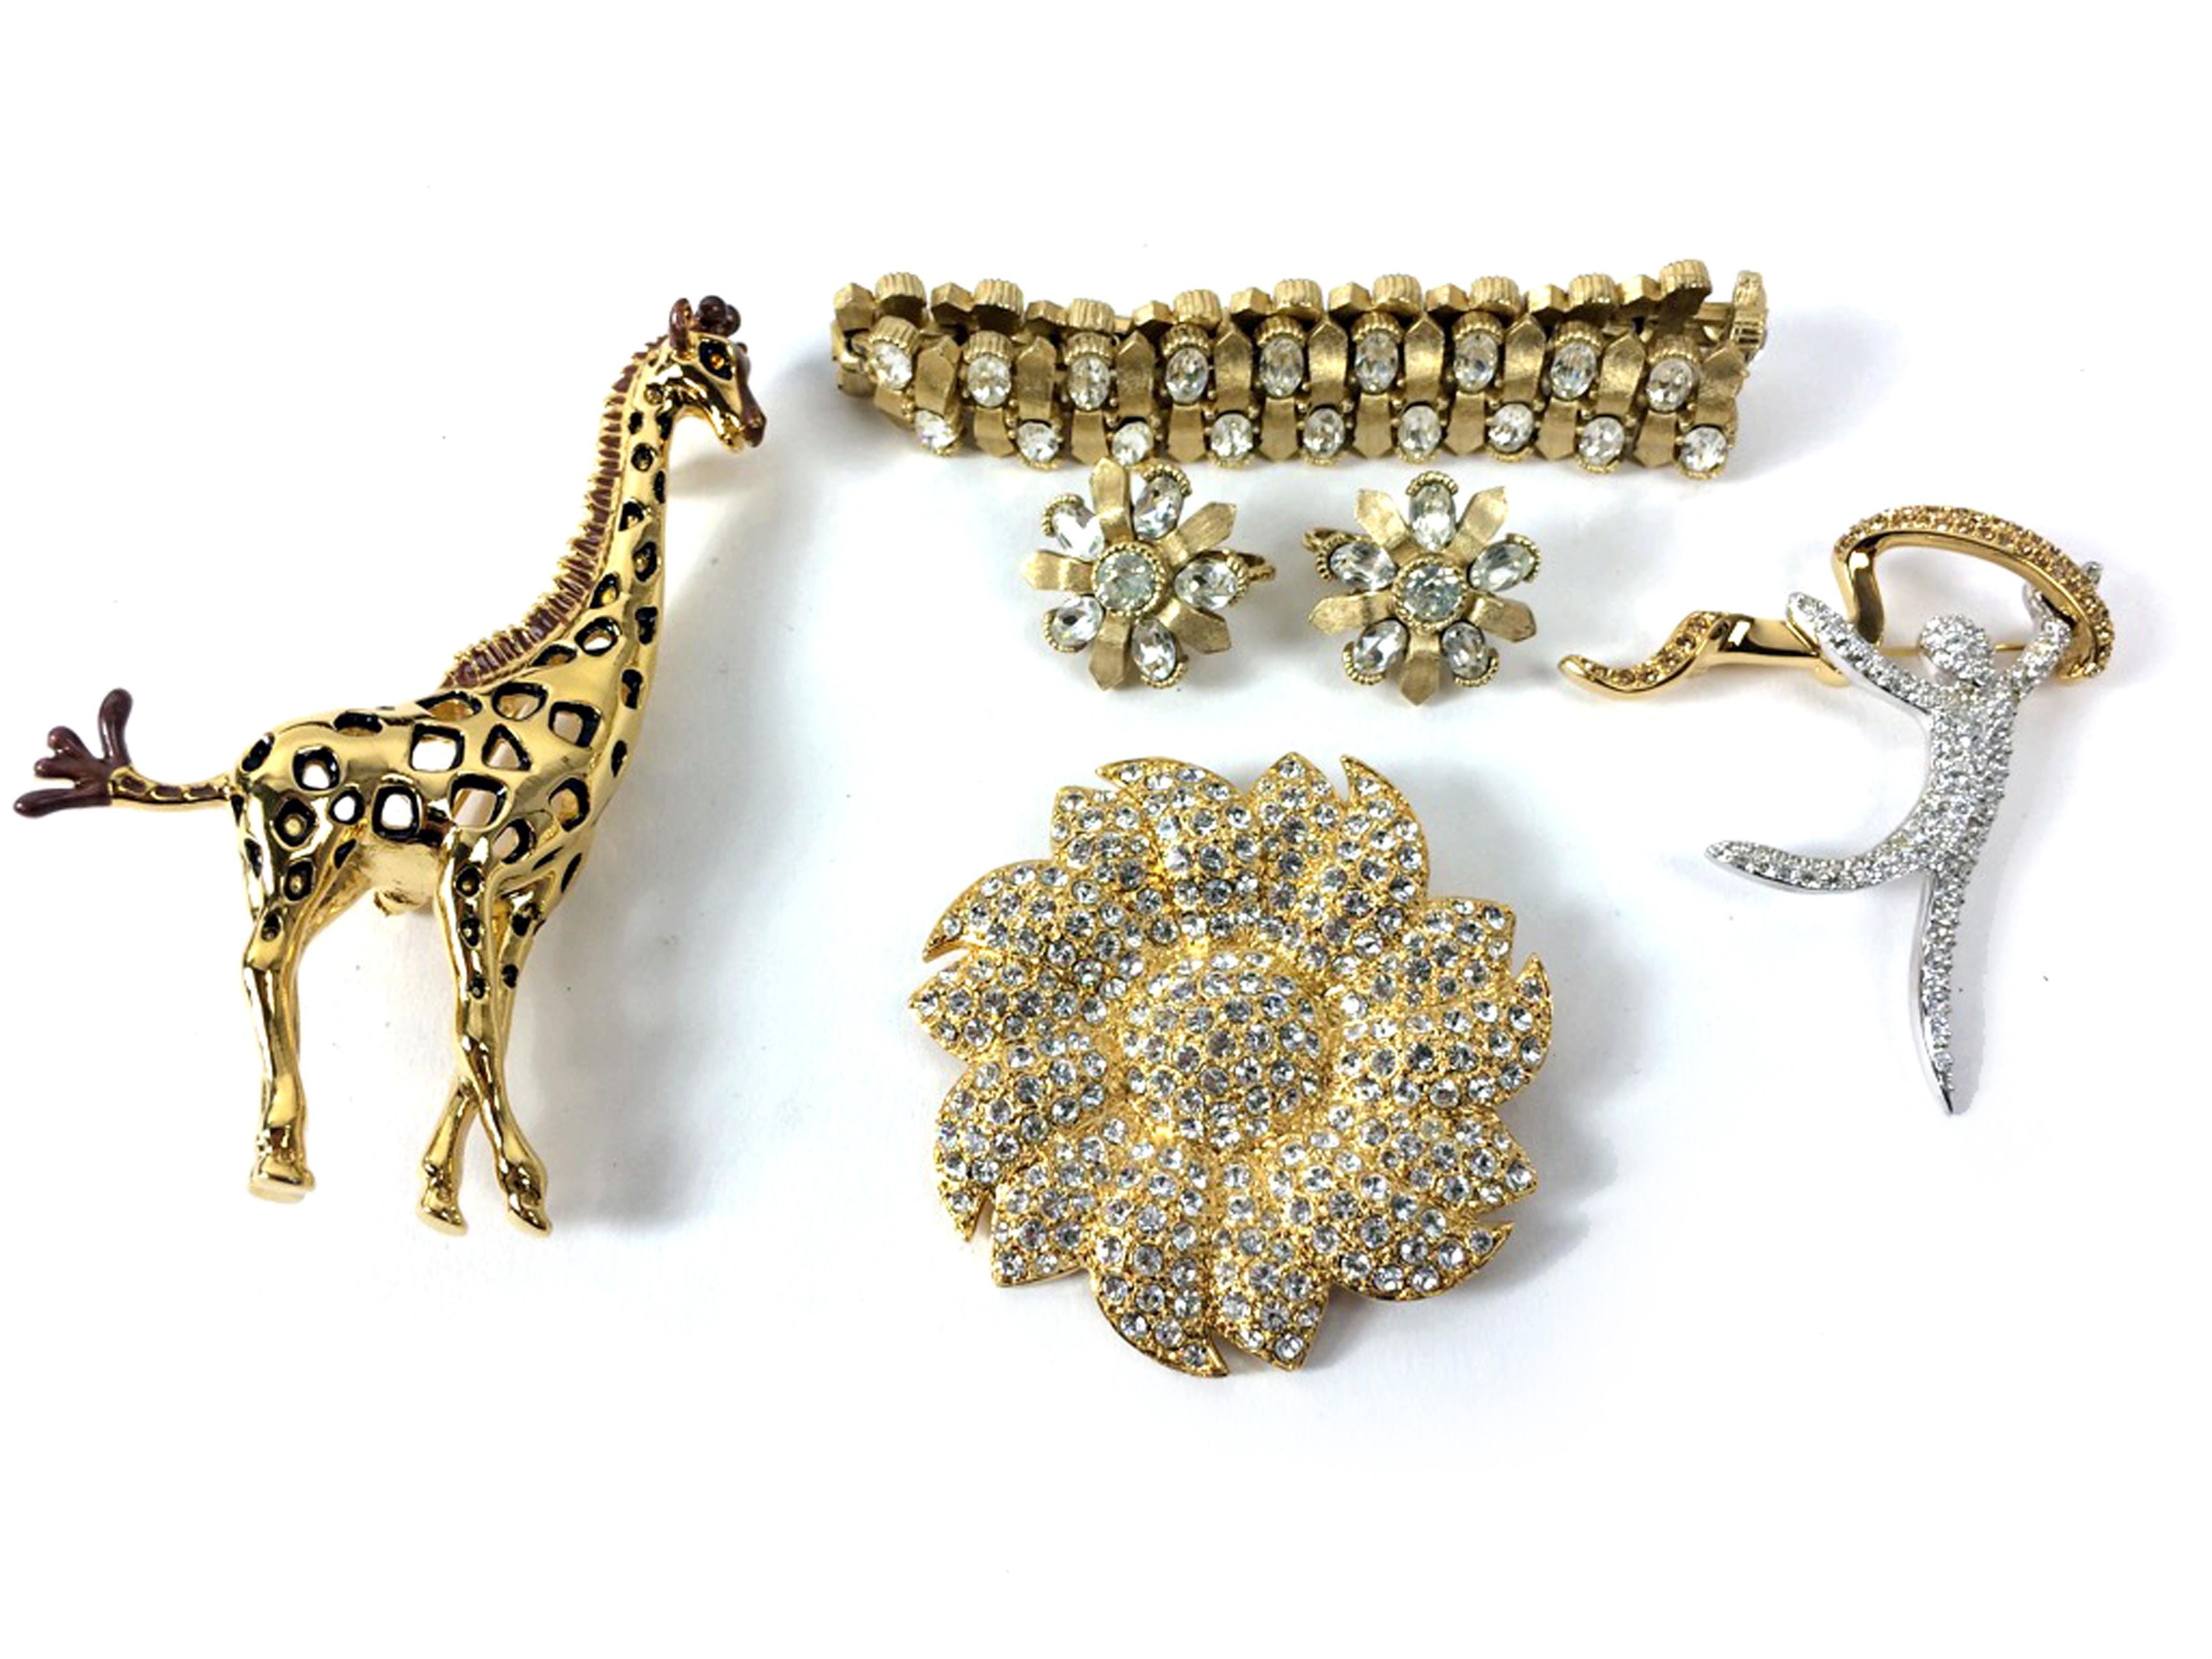 sc 1 st  AZCentral.com & 3 tips to determine value of costume jewelry